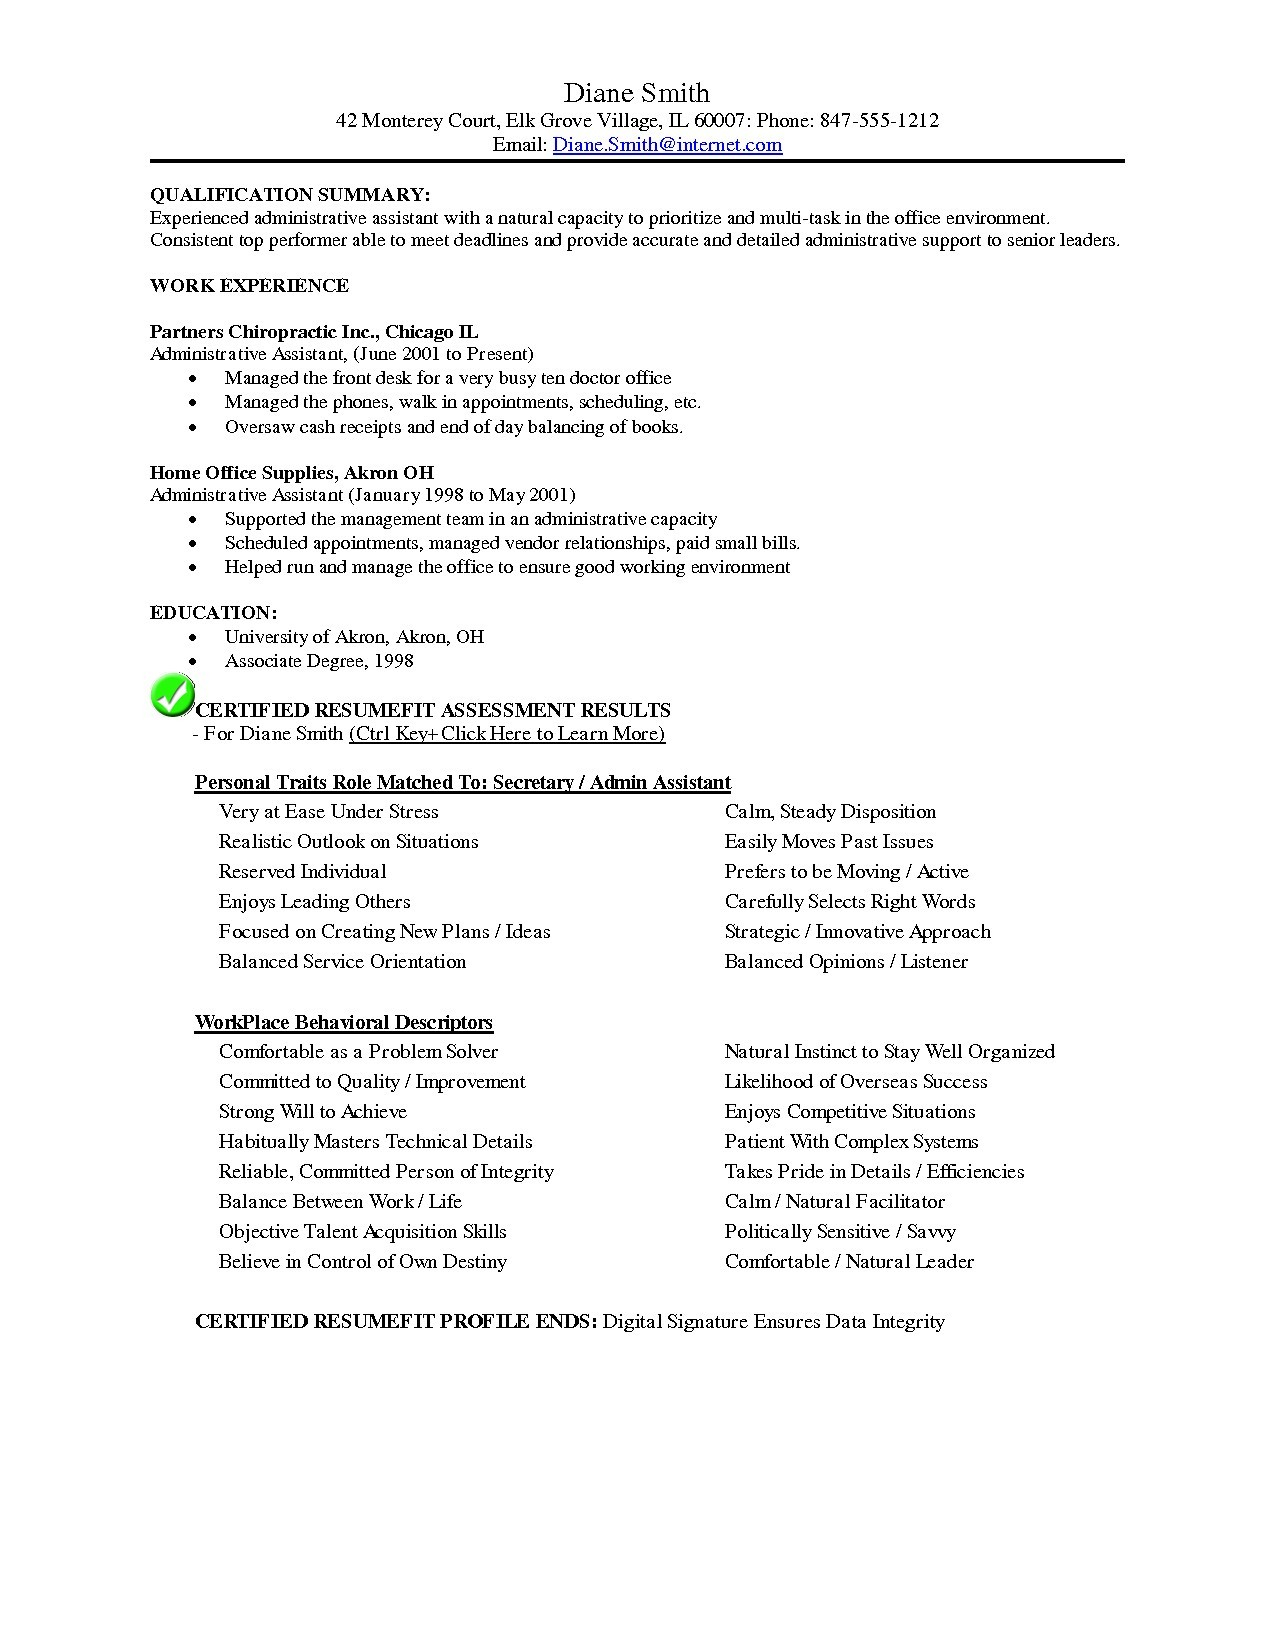 Resume Template for Secretary - 23 Resume Templates for Nursing Jobs